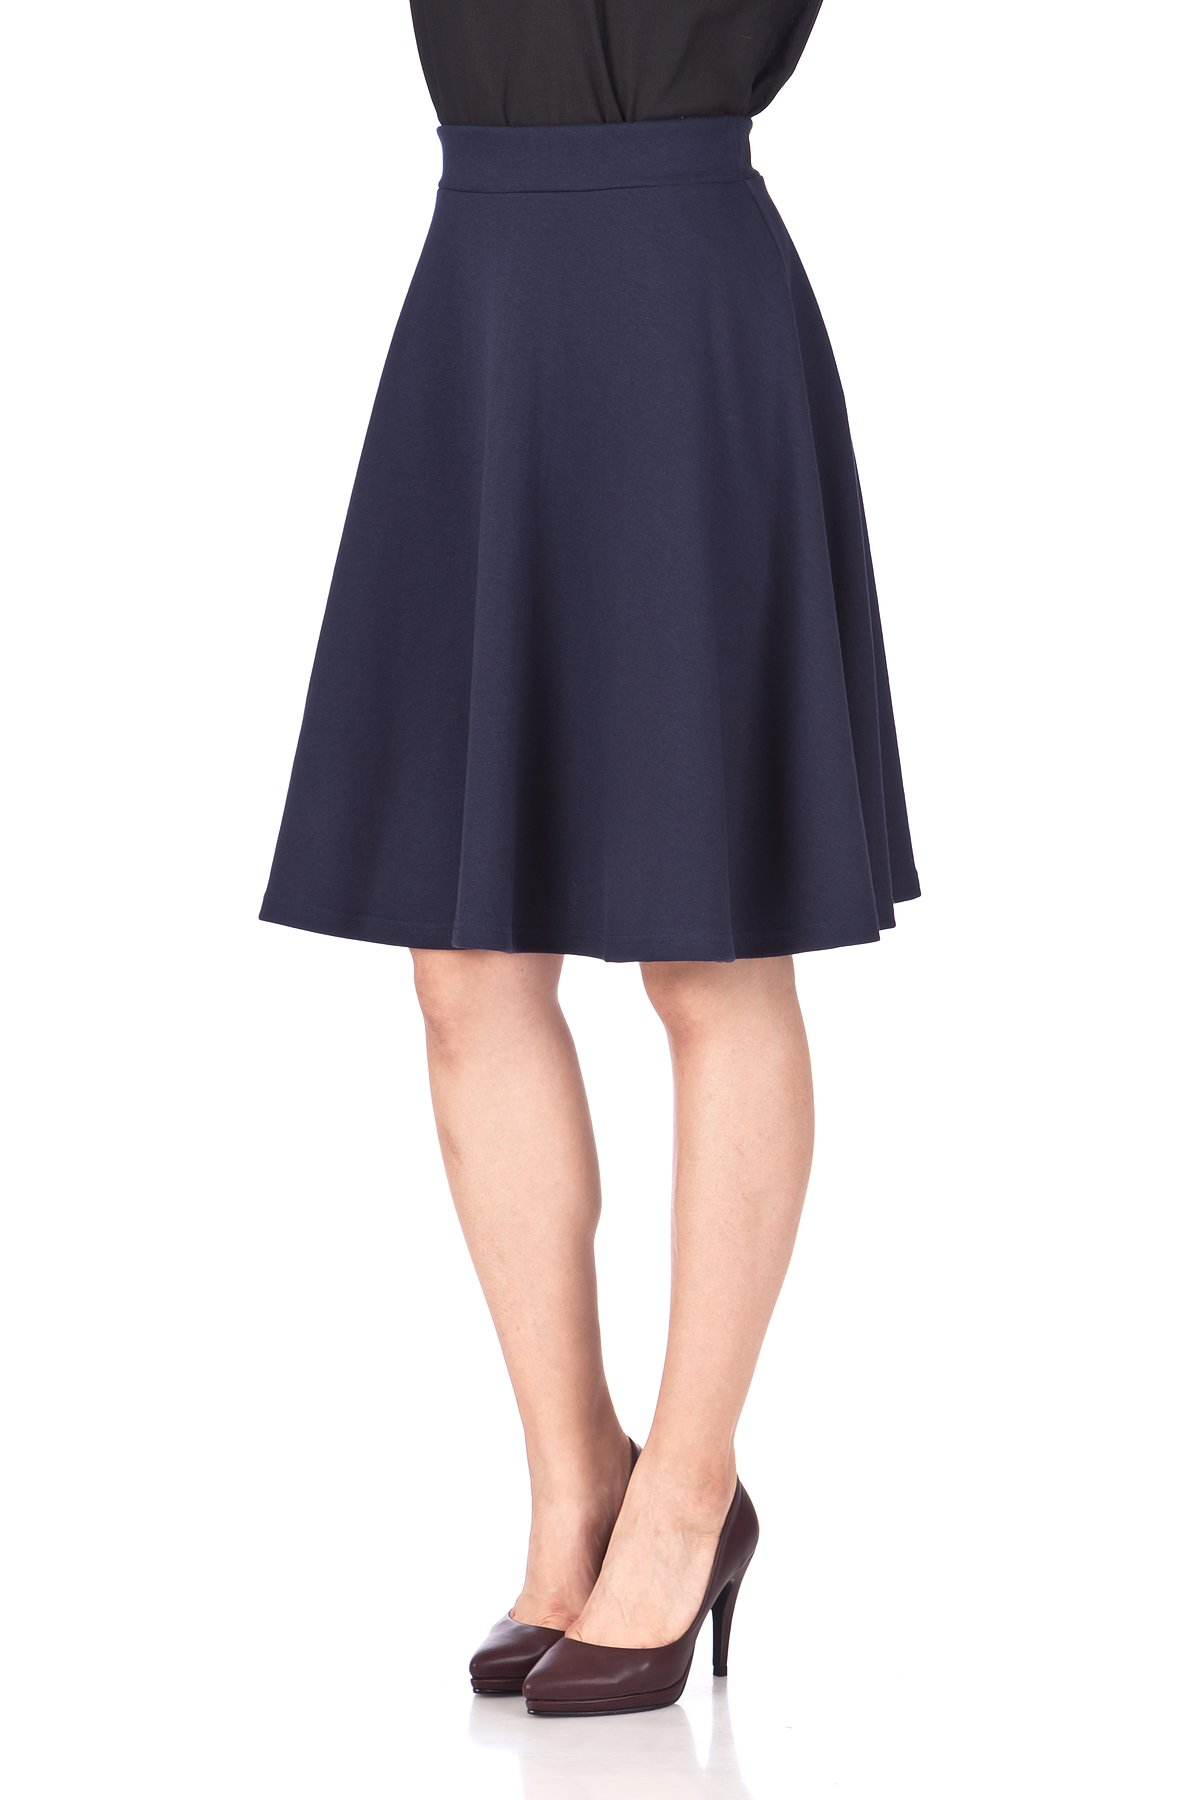 Comfy and Lovely Cotton Blend Versatile Casual Office High Waist A line Full Flared Swing Circle Skater Knee Length Skirt Navy 06 1